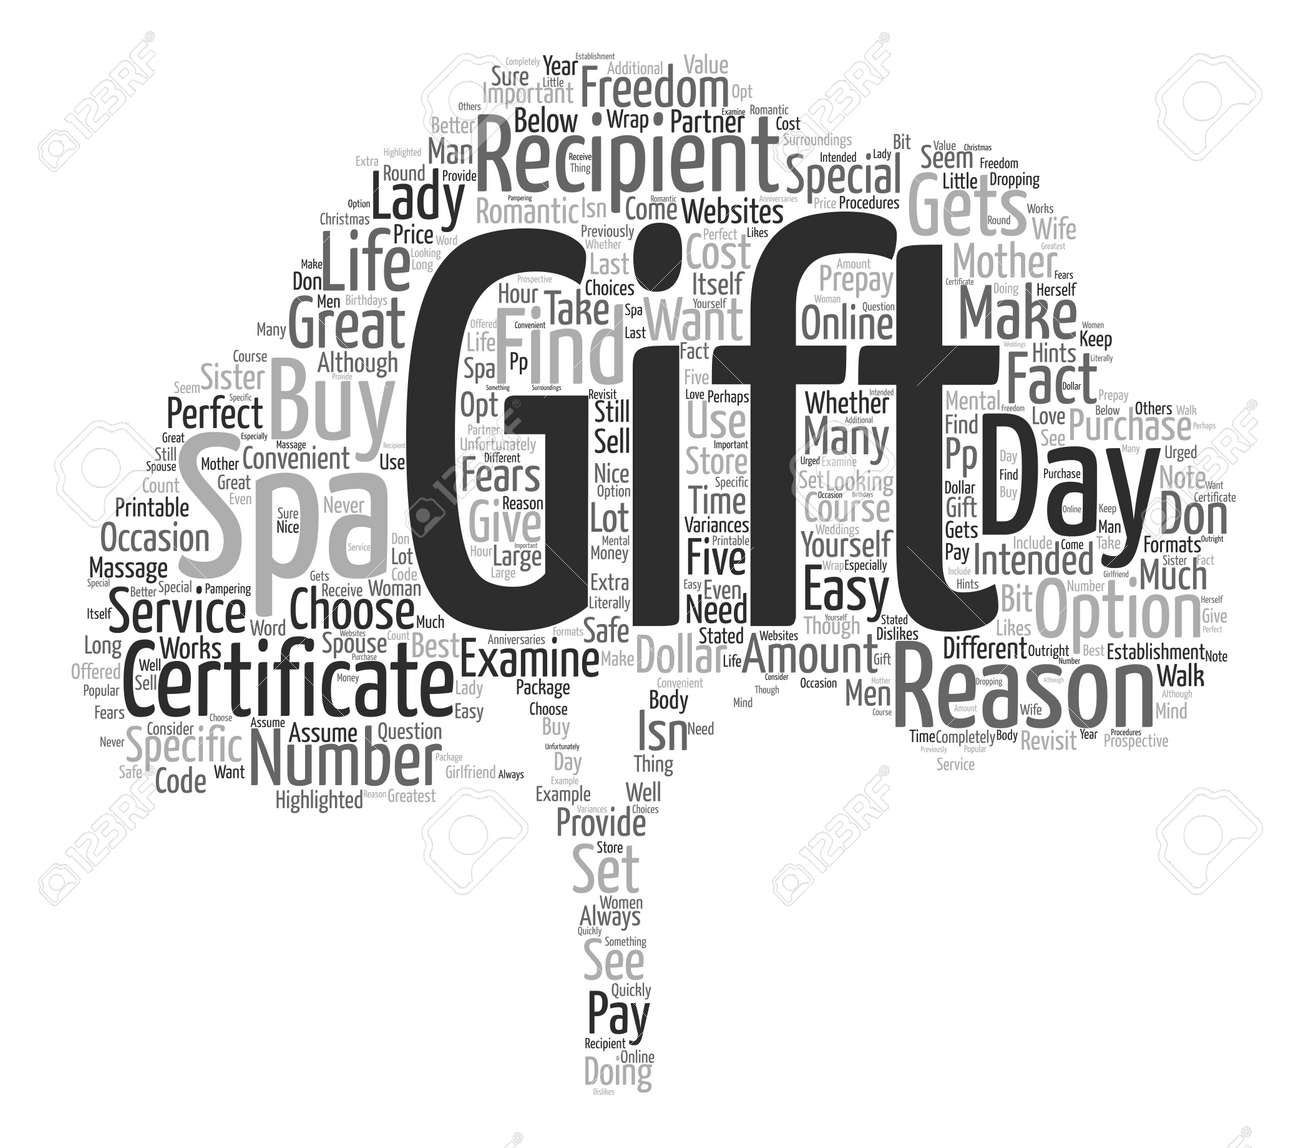 Day Spa Gift Certificates Reasons Why You Should Buy Them Text ...